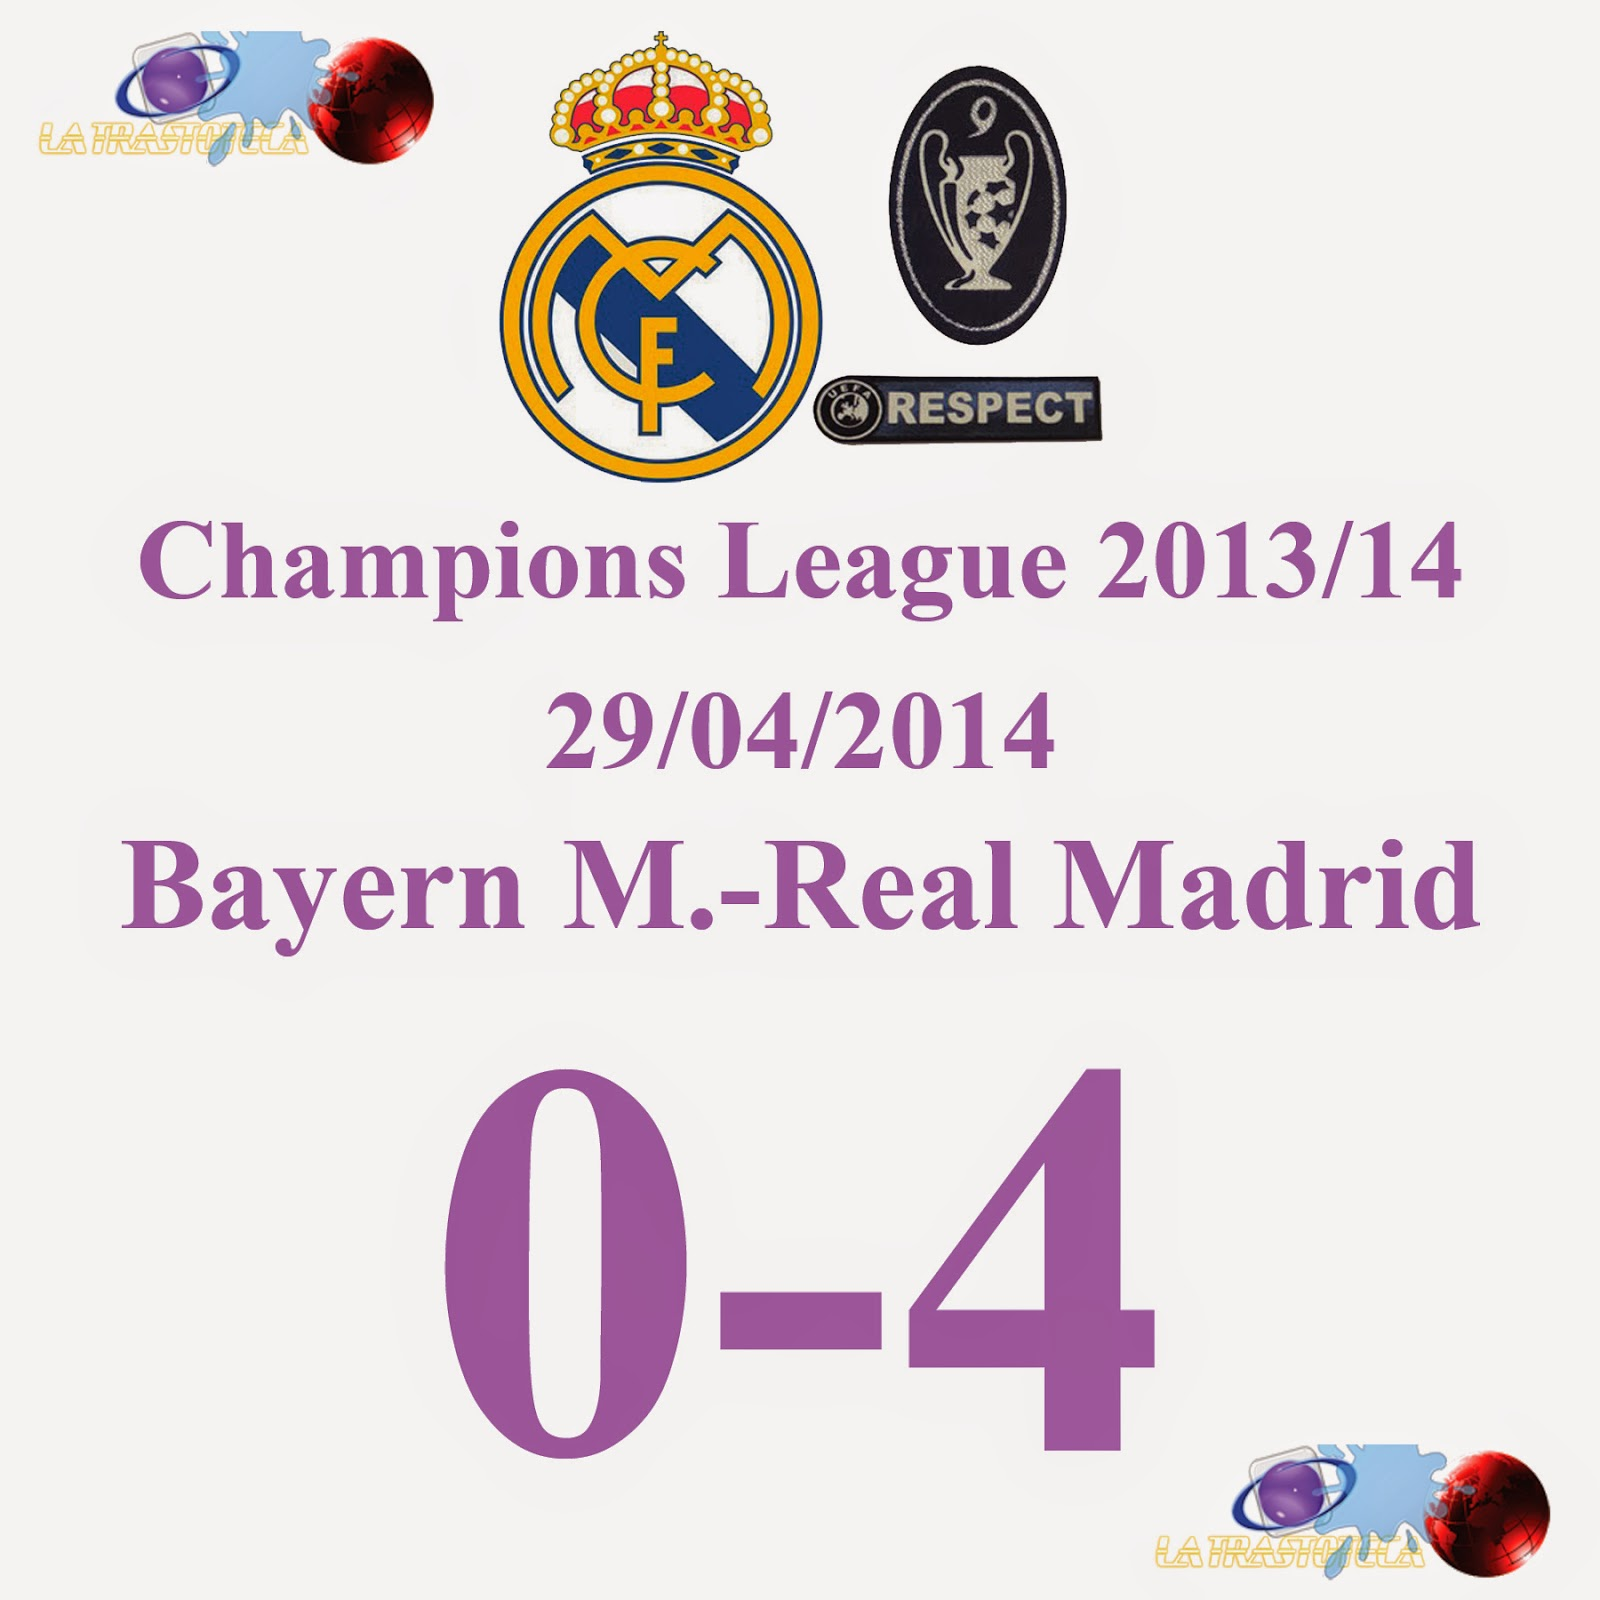 Cristiano ronaldo 0 3 bayern 0 real madrid 4 29 04 for Correo real madrid